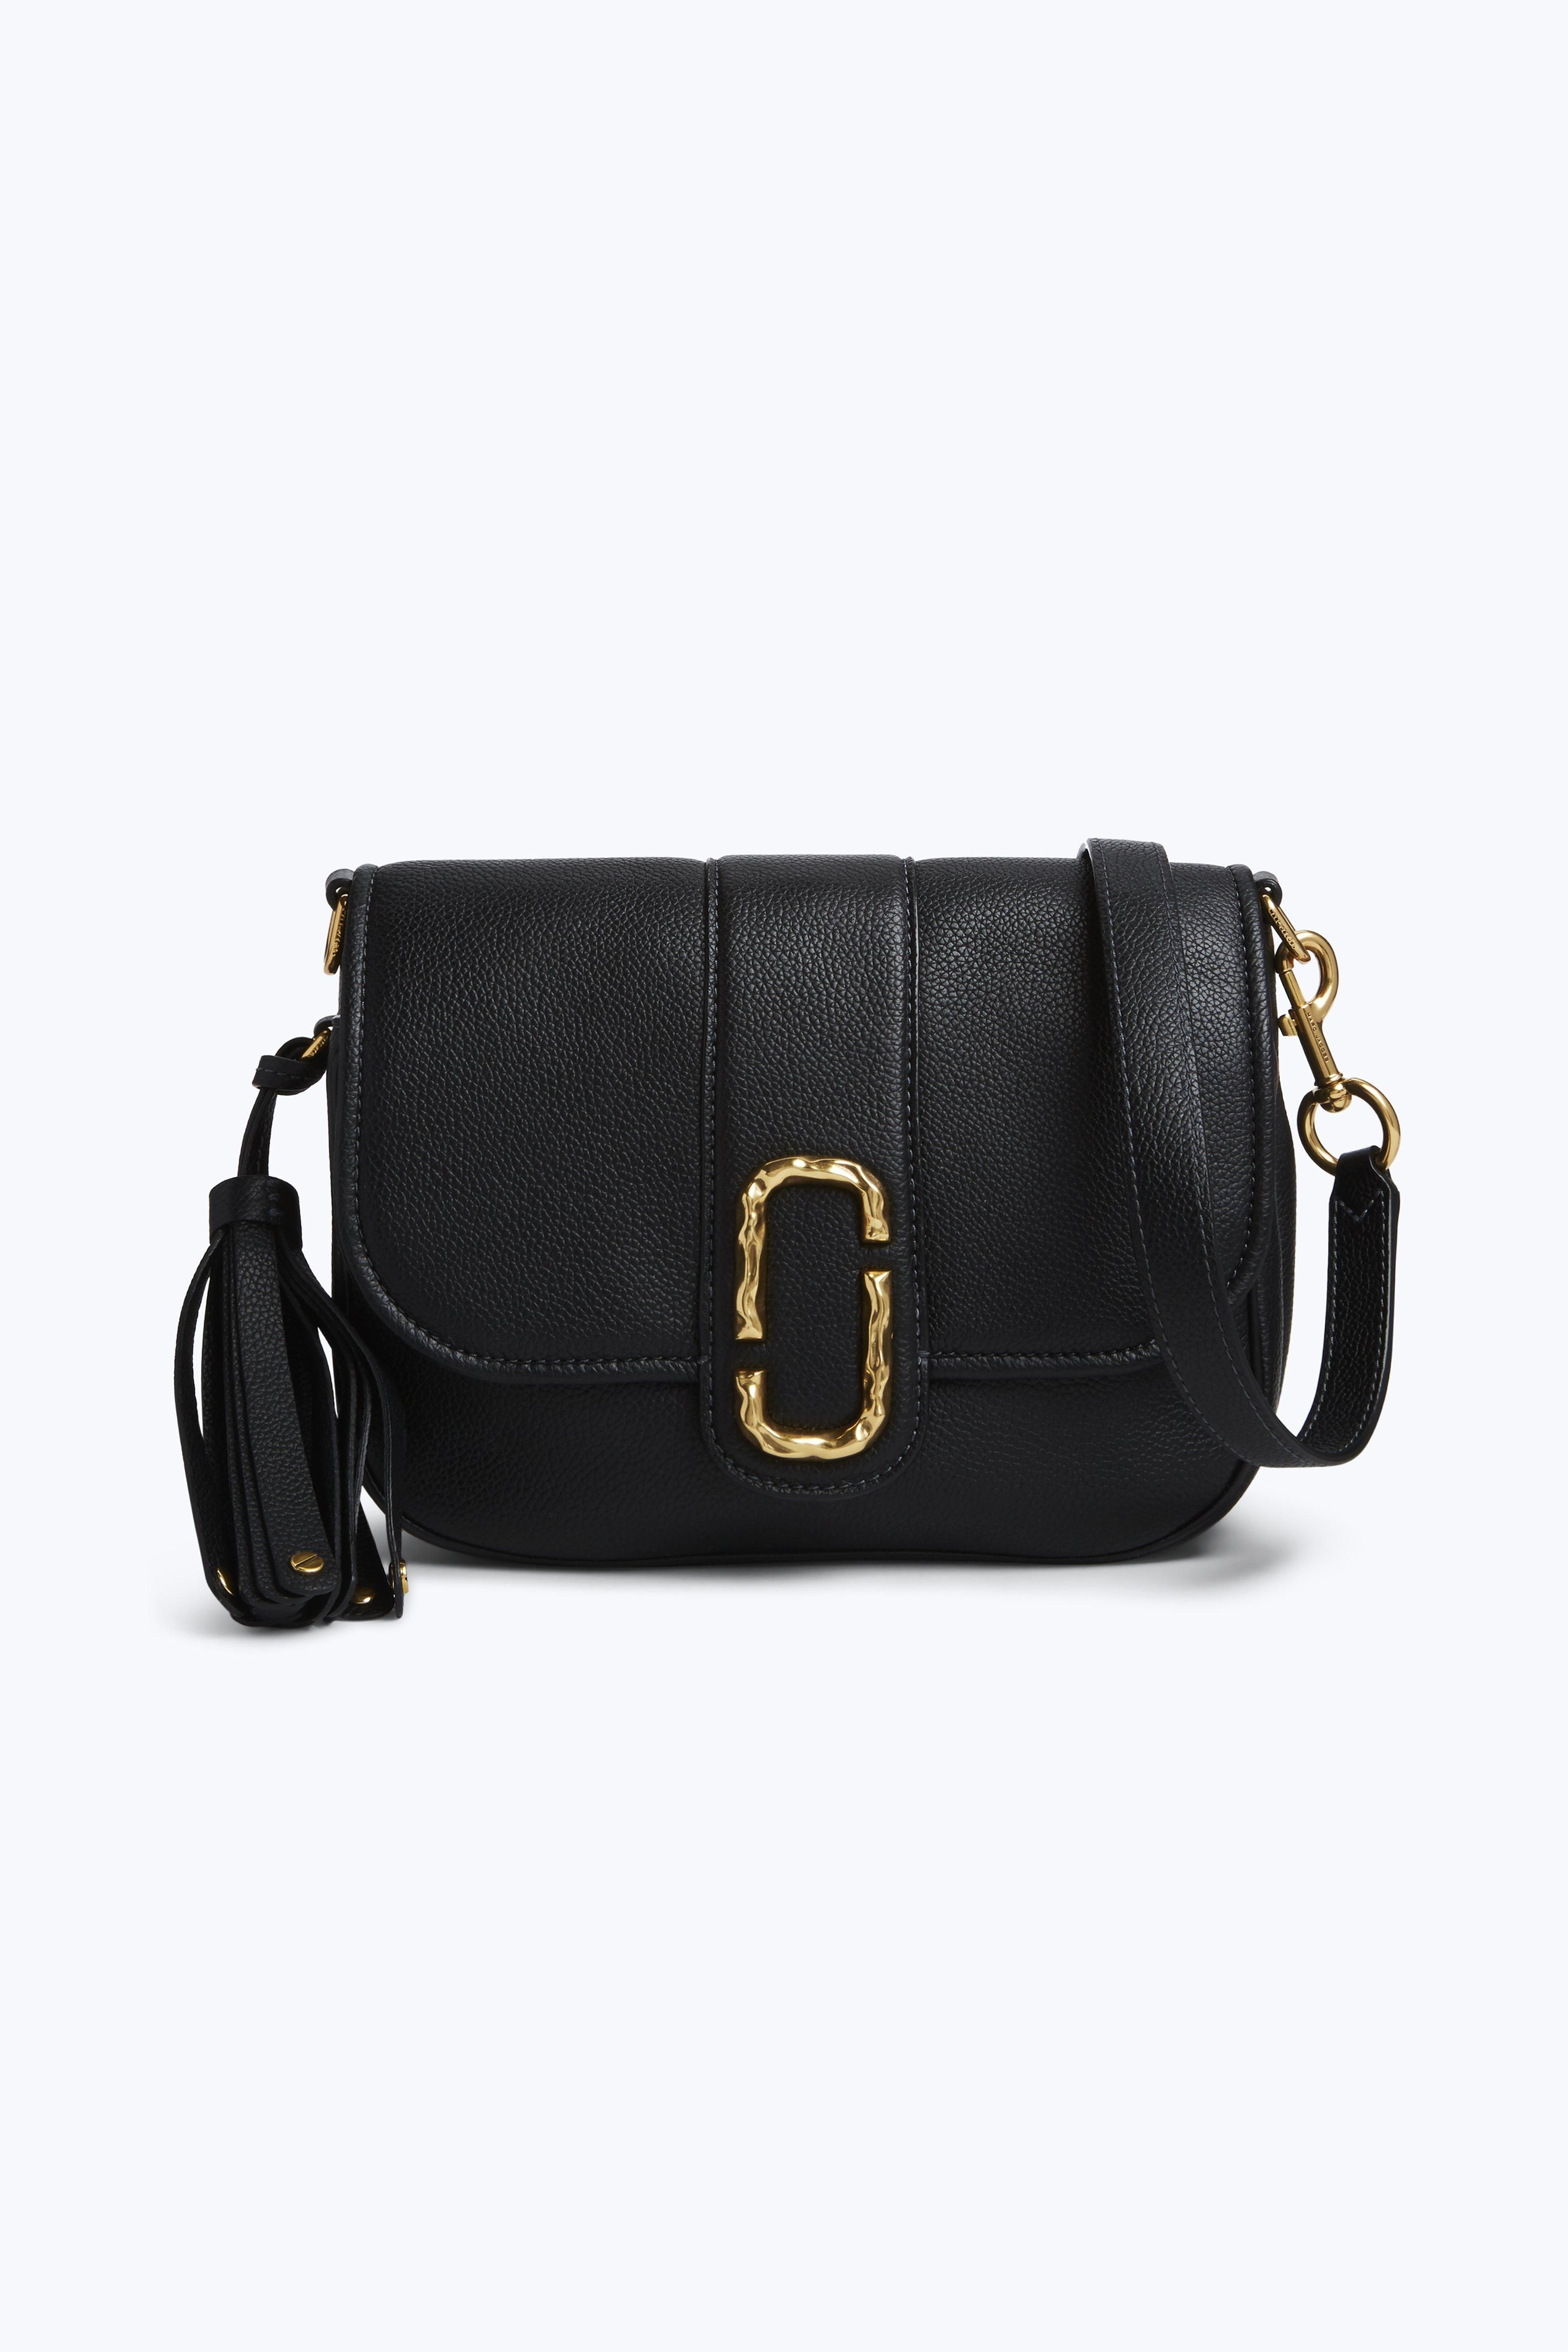 Compare and shop from fashion stores for MARC JACOBS Interlock Small Courier 266f54cafcb3b